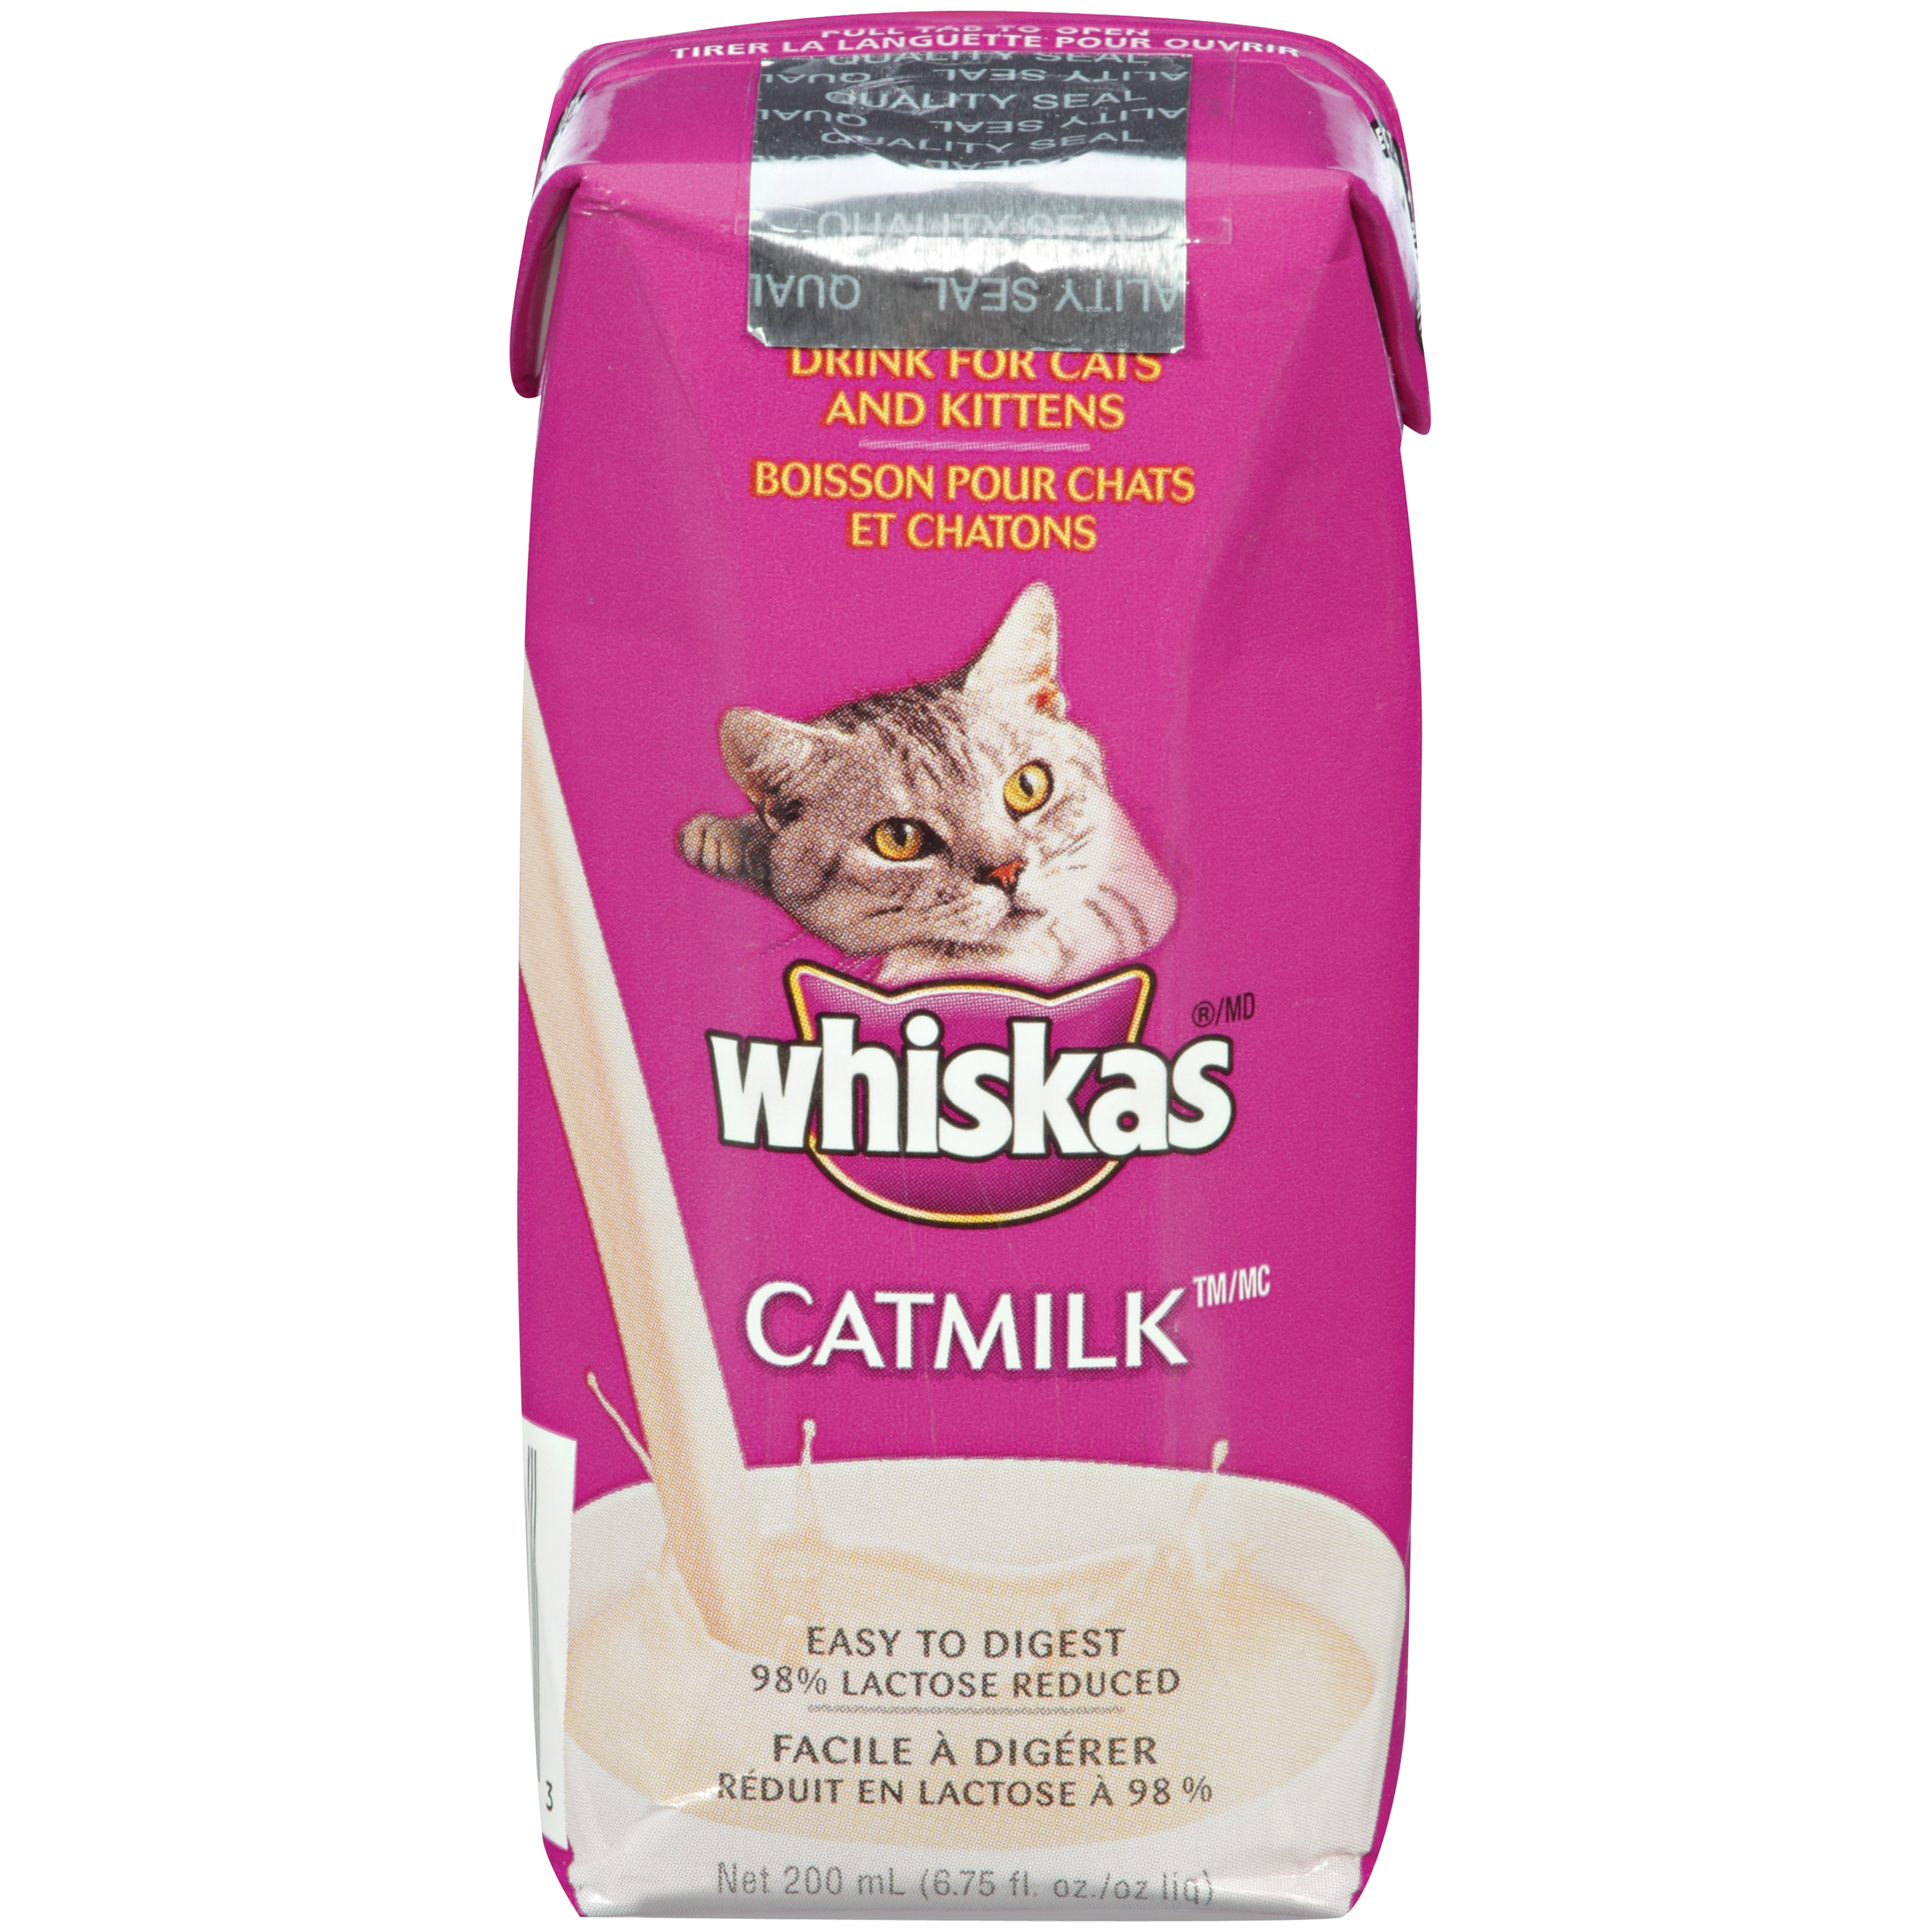 Whiskas 3 Count Milk Plus Drinks Box For Cats, 6.75 Oz (3 Ct.)